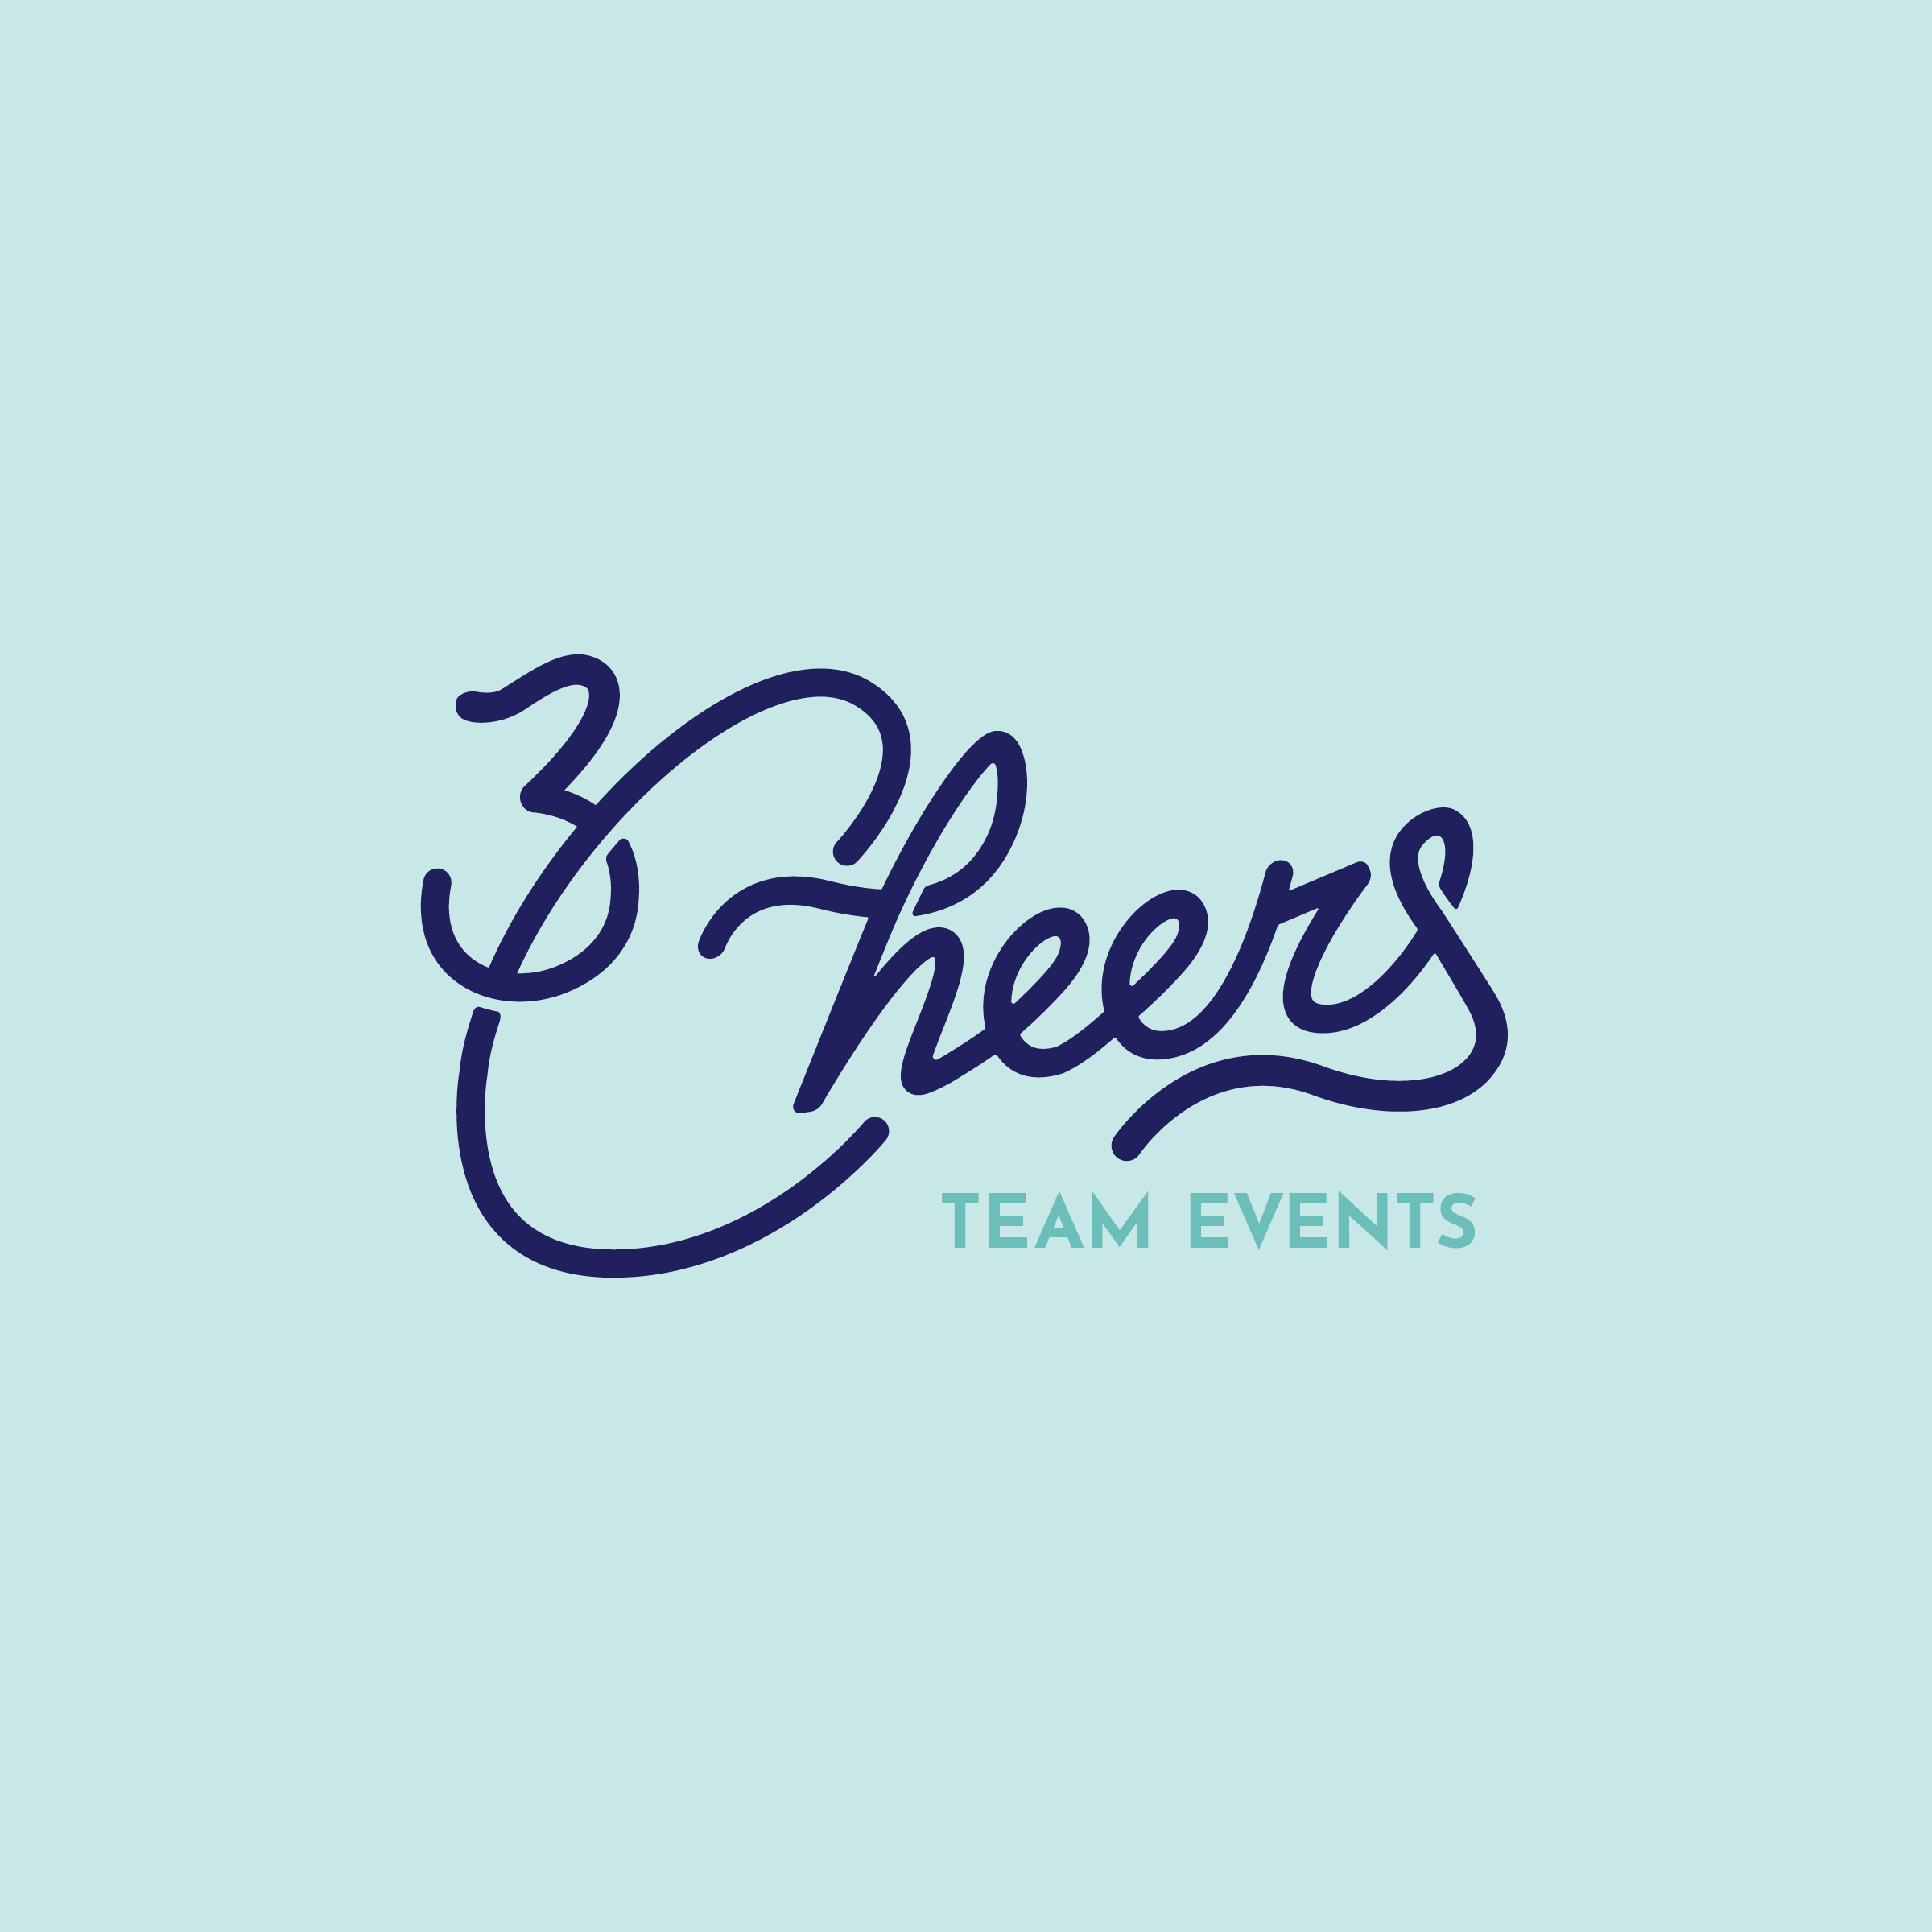 3Cheers | Logo + Team Events | BTT1.jpg